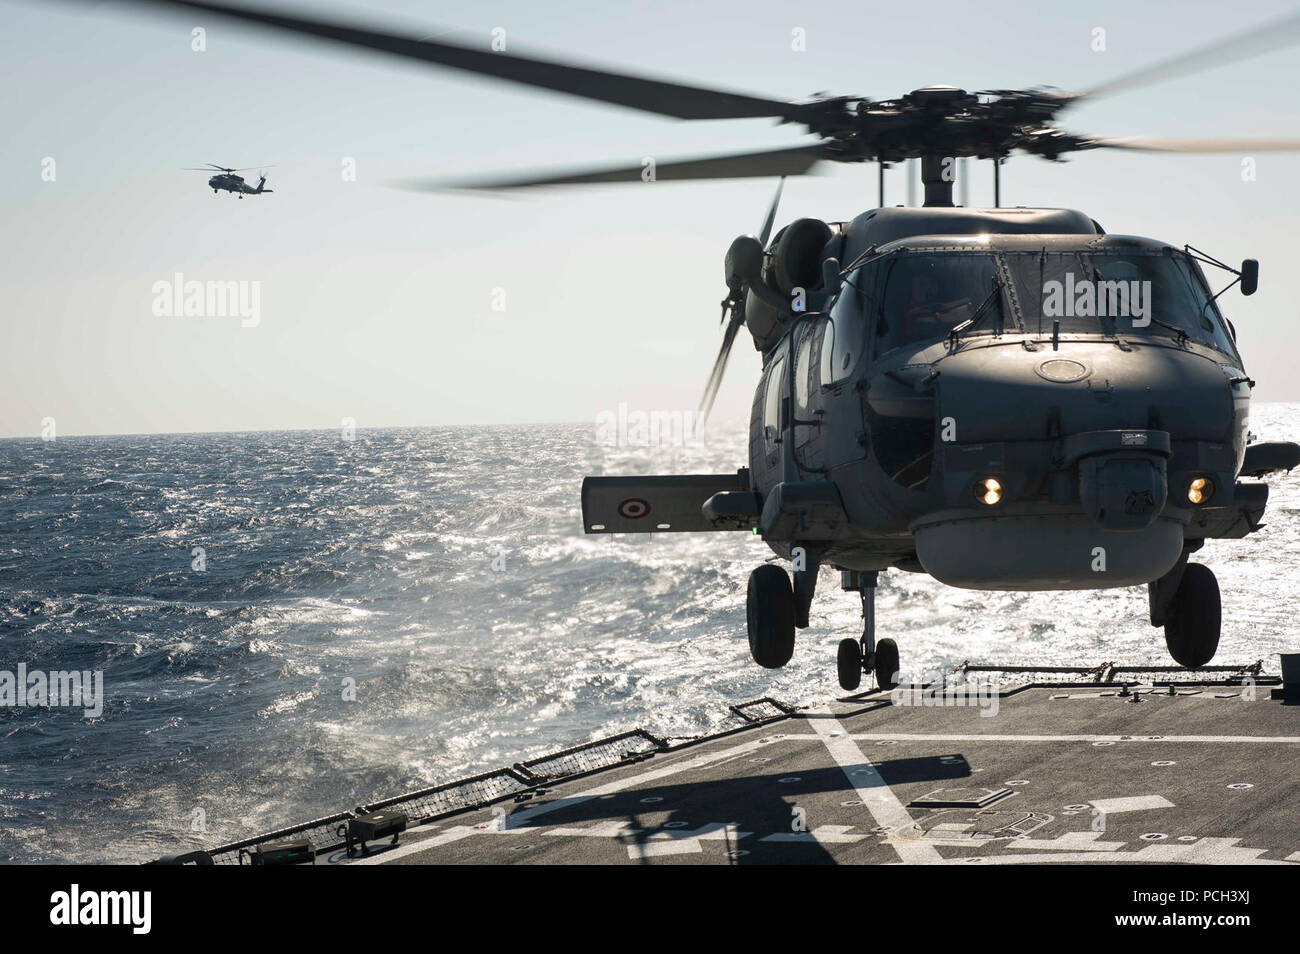 MEDITERRANEAN SEA (March 28, 2016) A Turkish Navy S-70B Seahawk lands aboard USS Porter (DDG 78). Porter, an Arleigh Burke-class guided-missile destroyer, forward-deployed to Rota, Spain, is conducting a routine patrol in the U.S. 6th Fleet area of operations in support of U.S. national security interests in Europe. Stock Photo